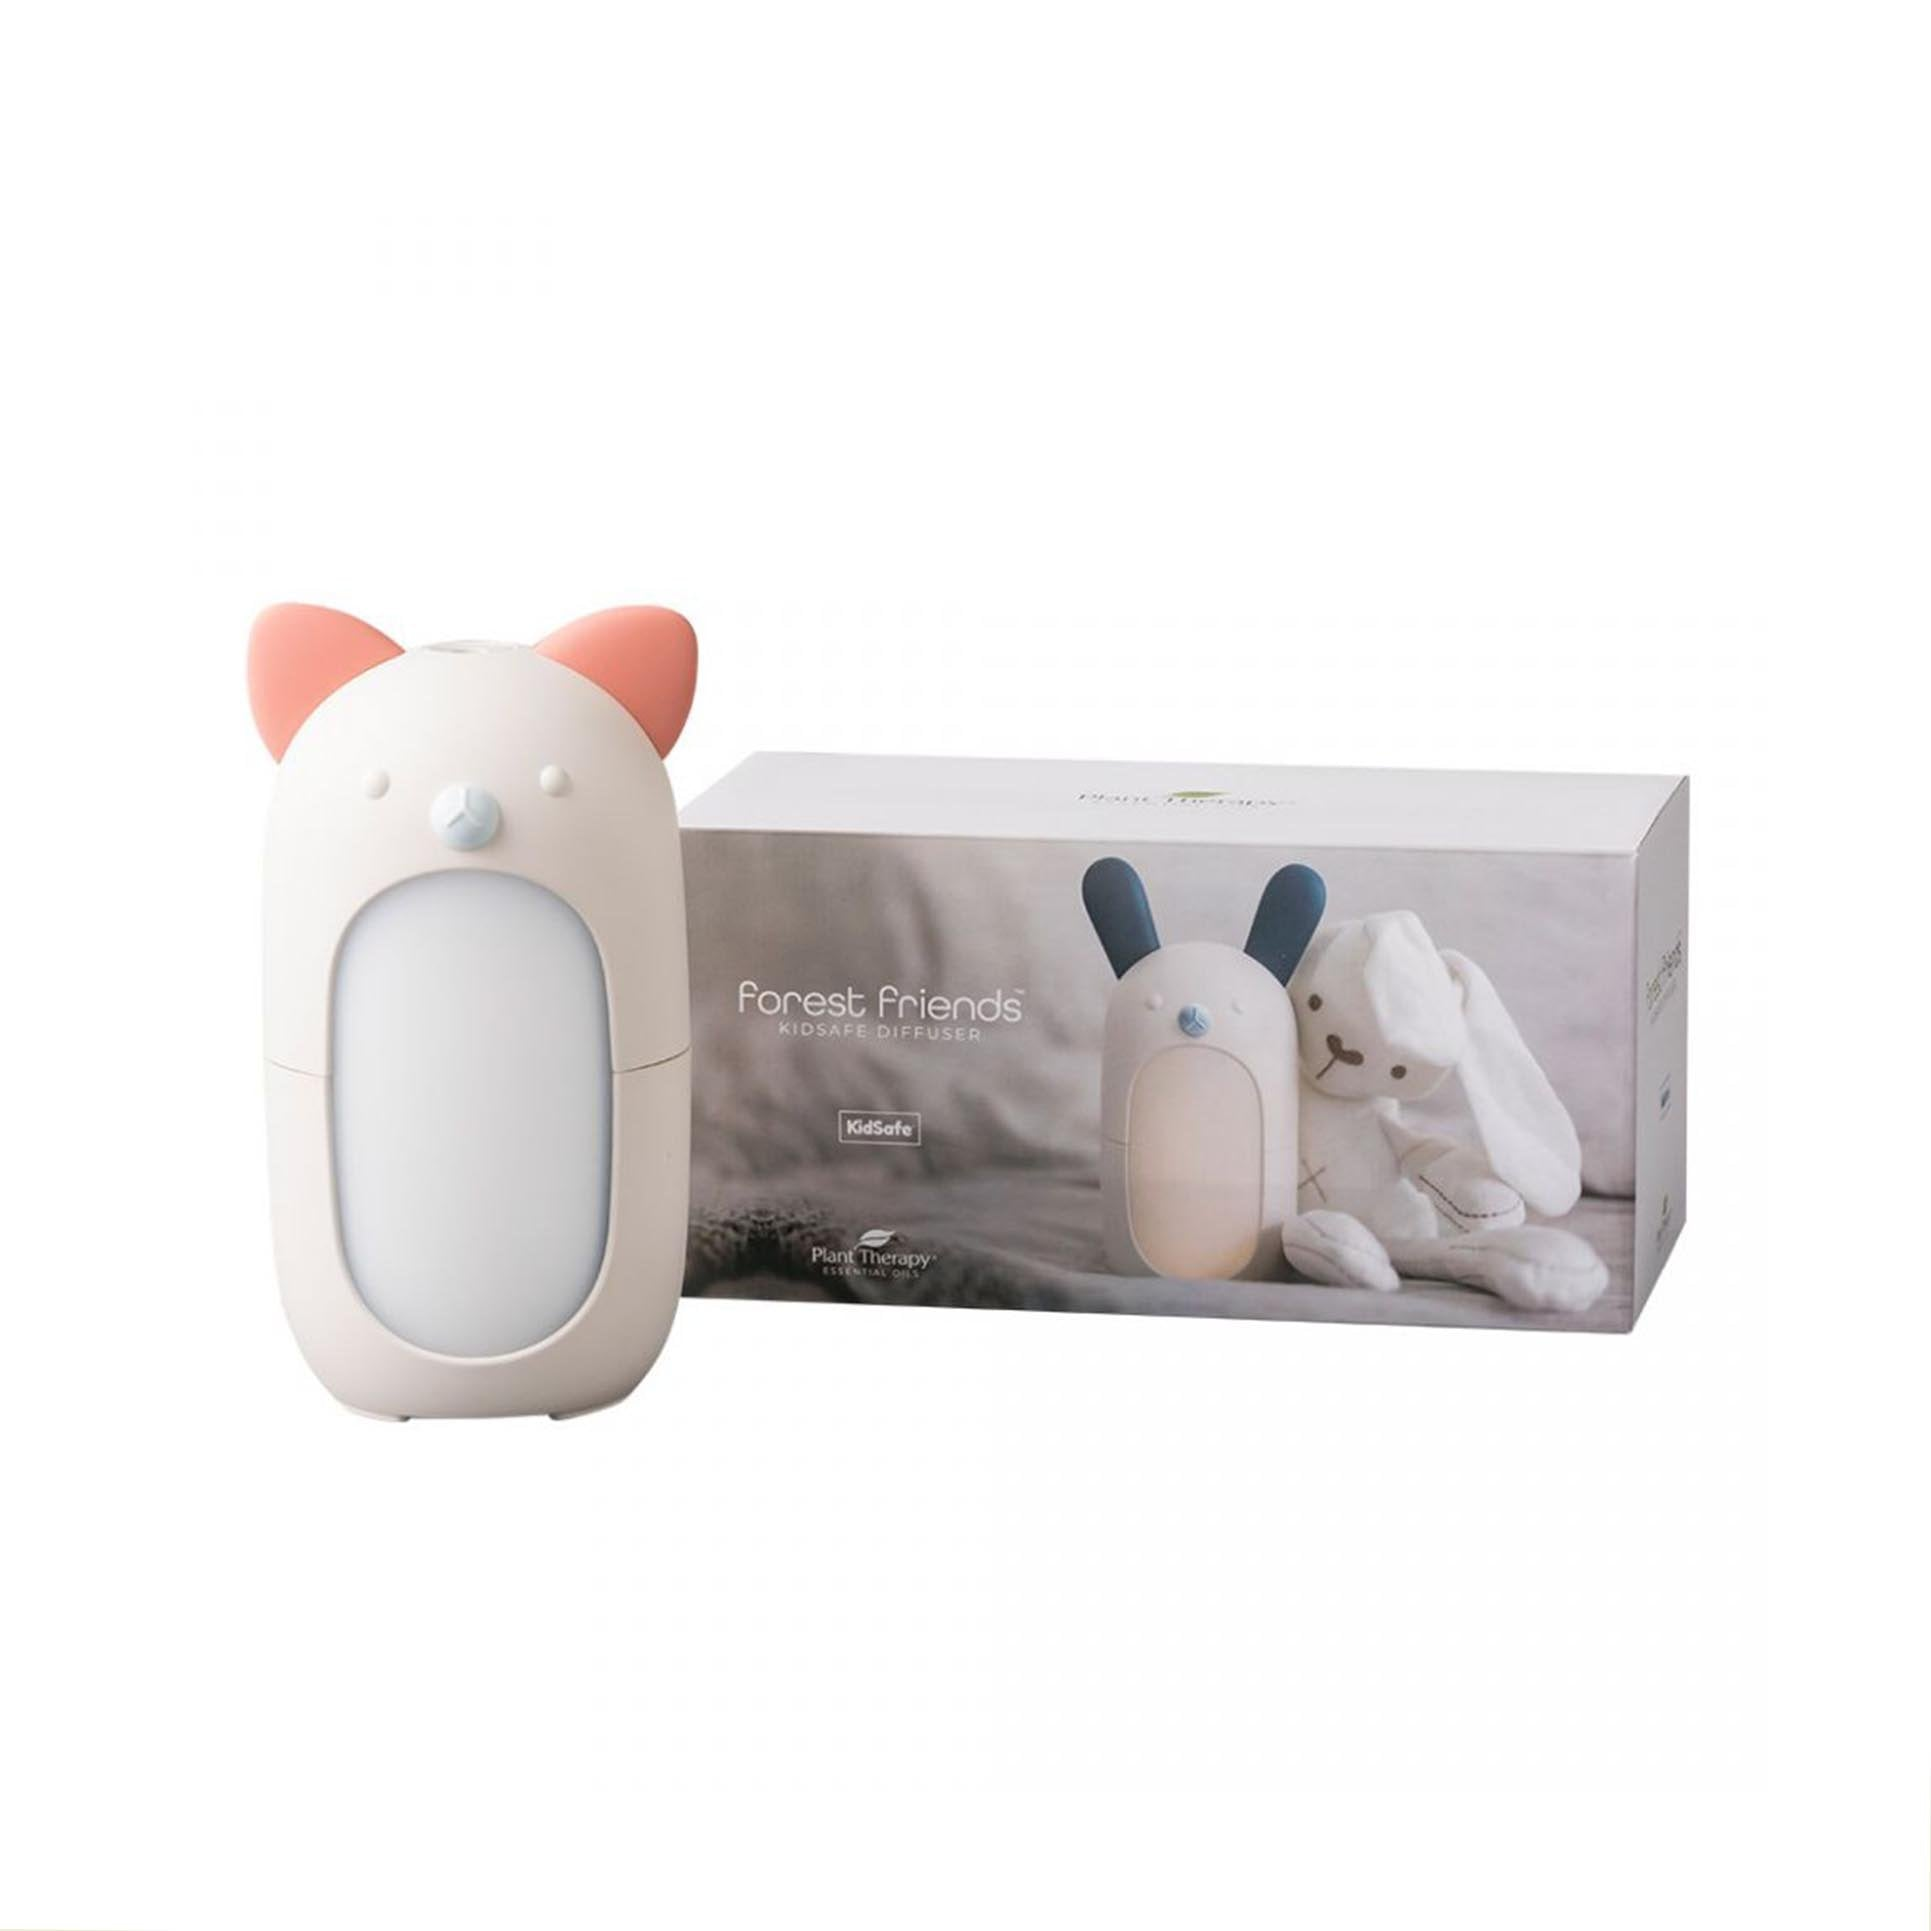 diffuser shaped like cat, next to product packaging featuring rabbit shaped diffuser